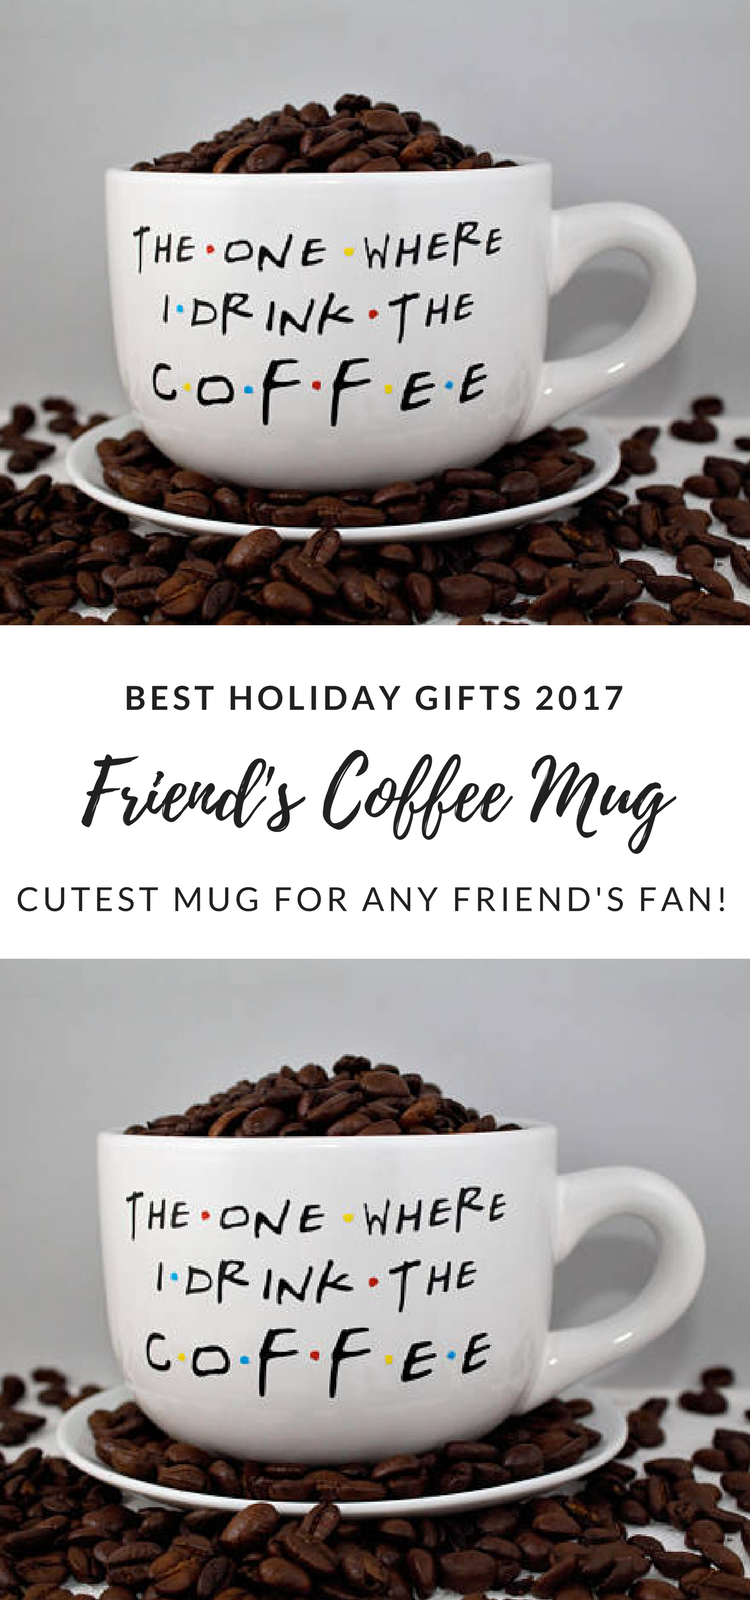 Coffee-The One Where I Drink The Coffee-Friends TV Show Gift Guide ...